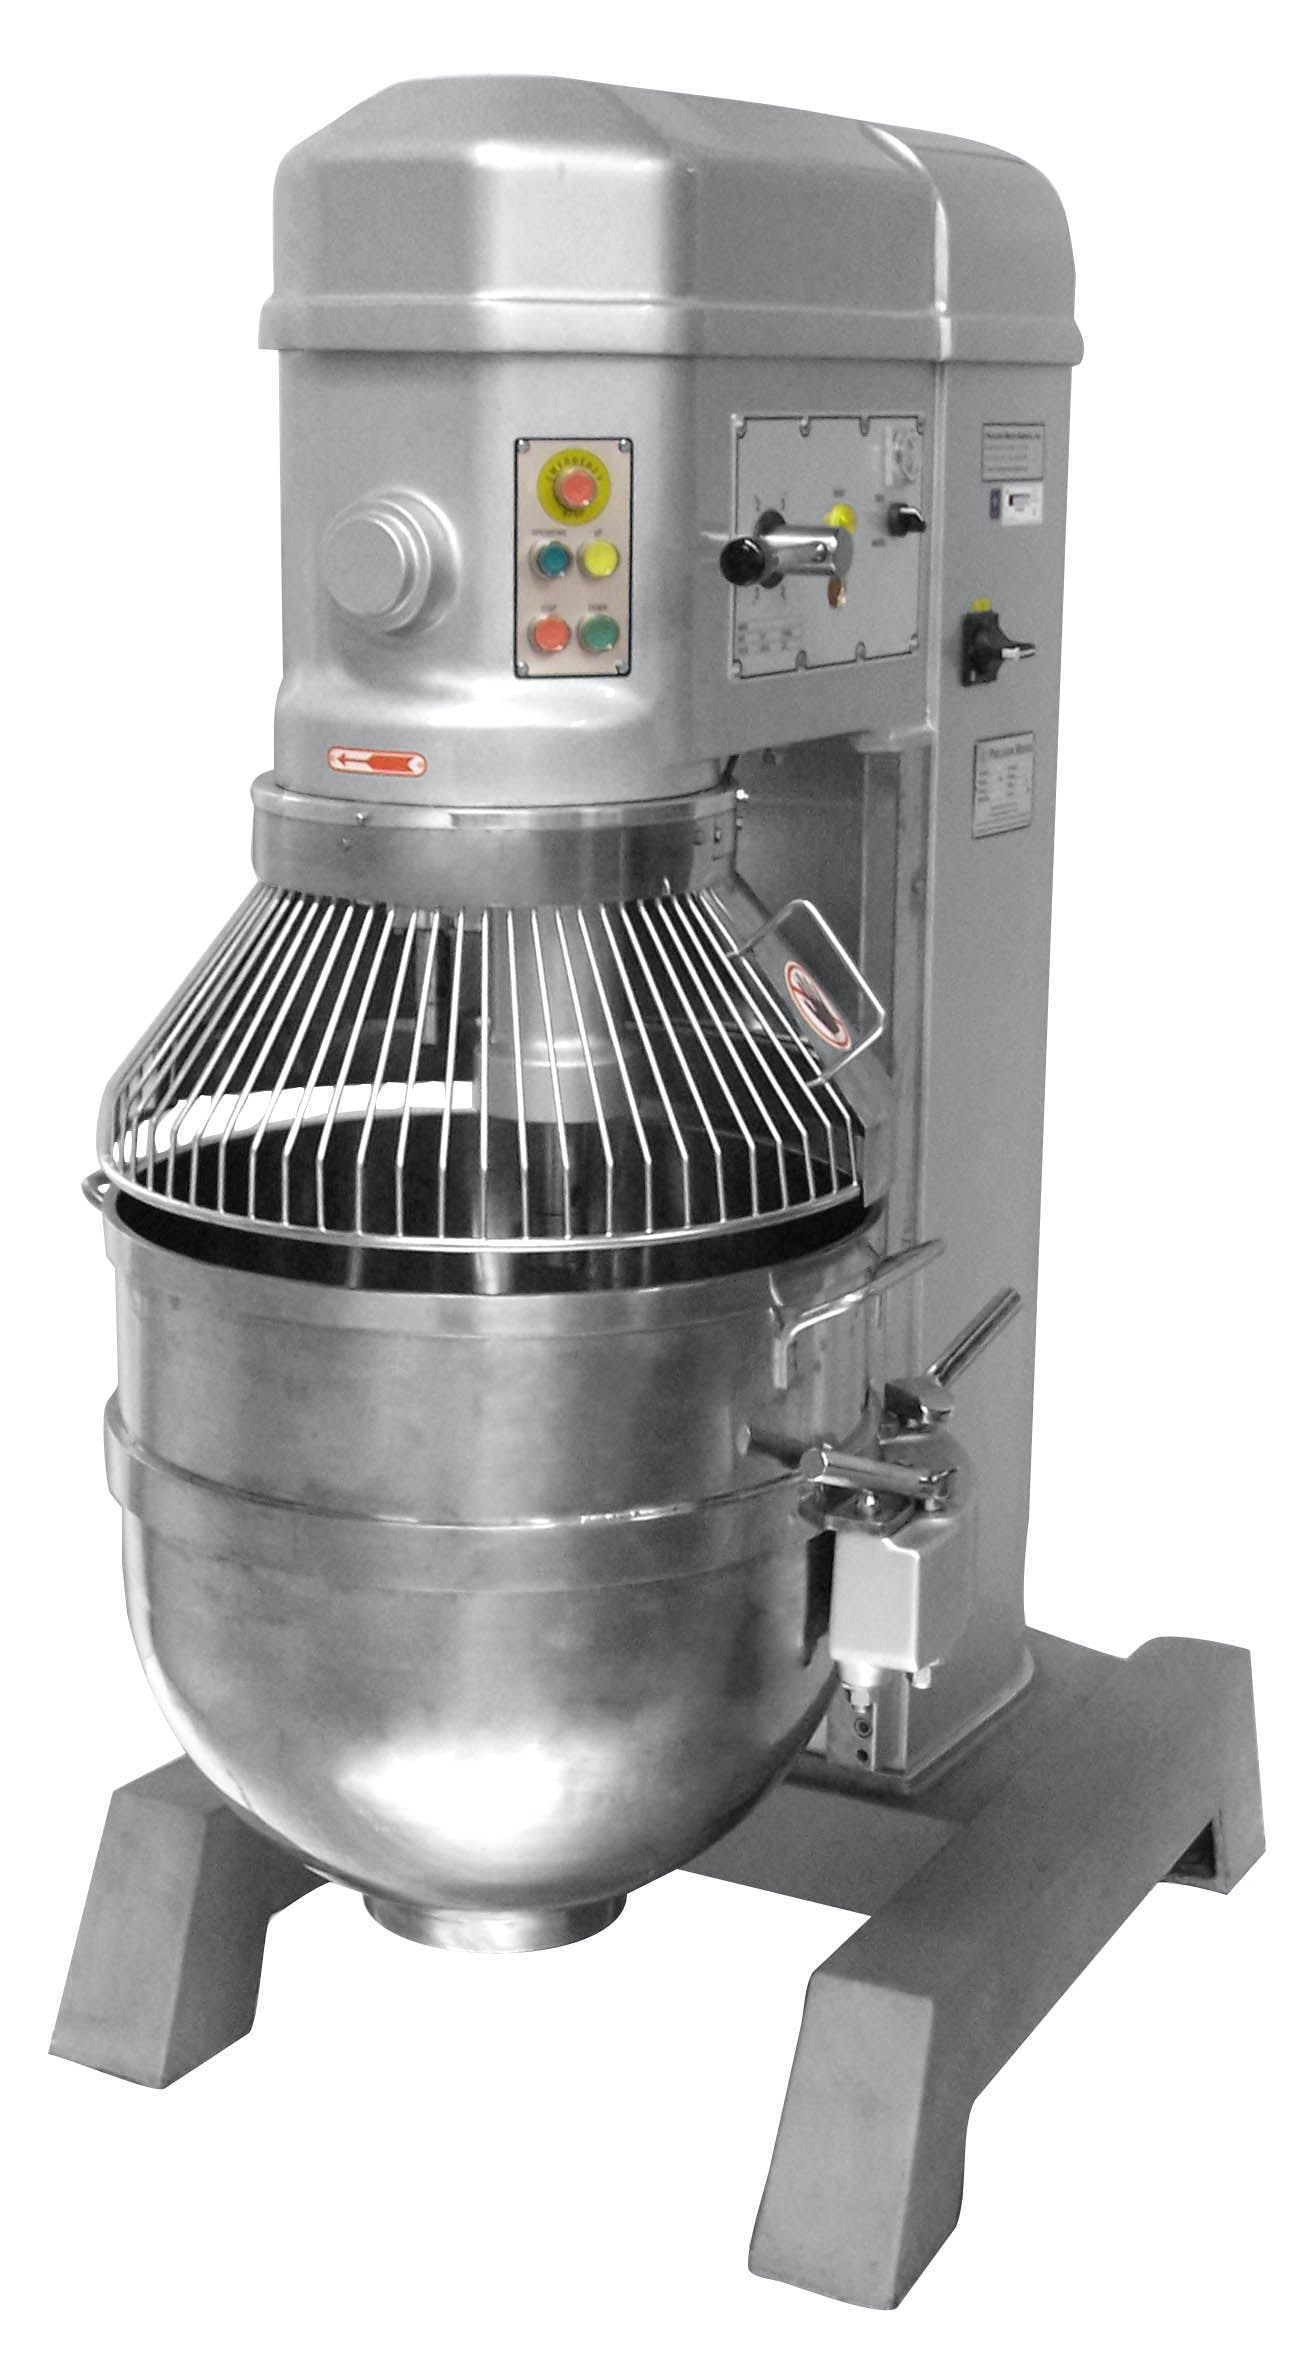 M-140W Mixer sold by Precision North America Food Machinery